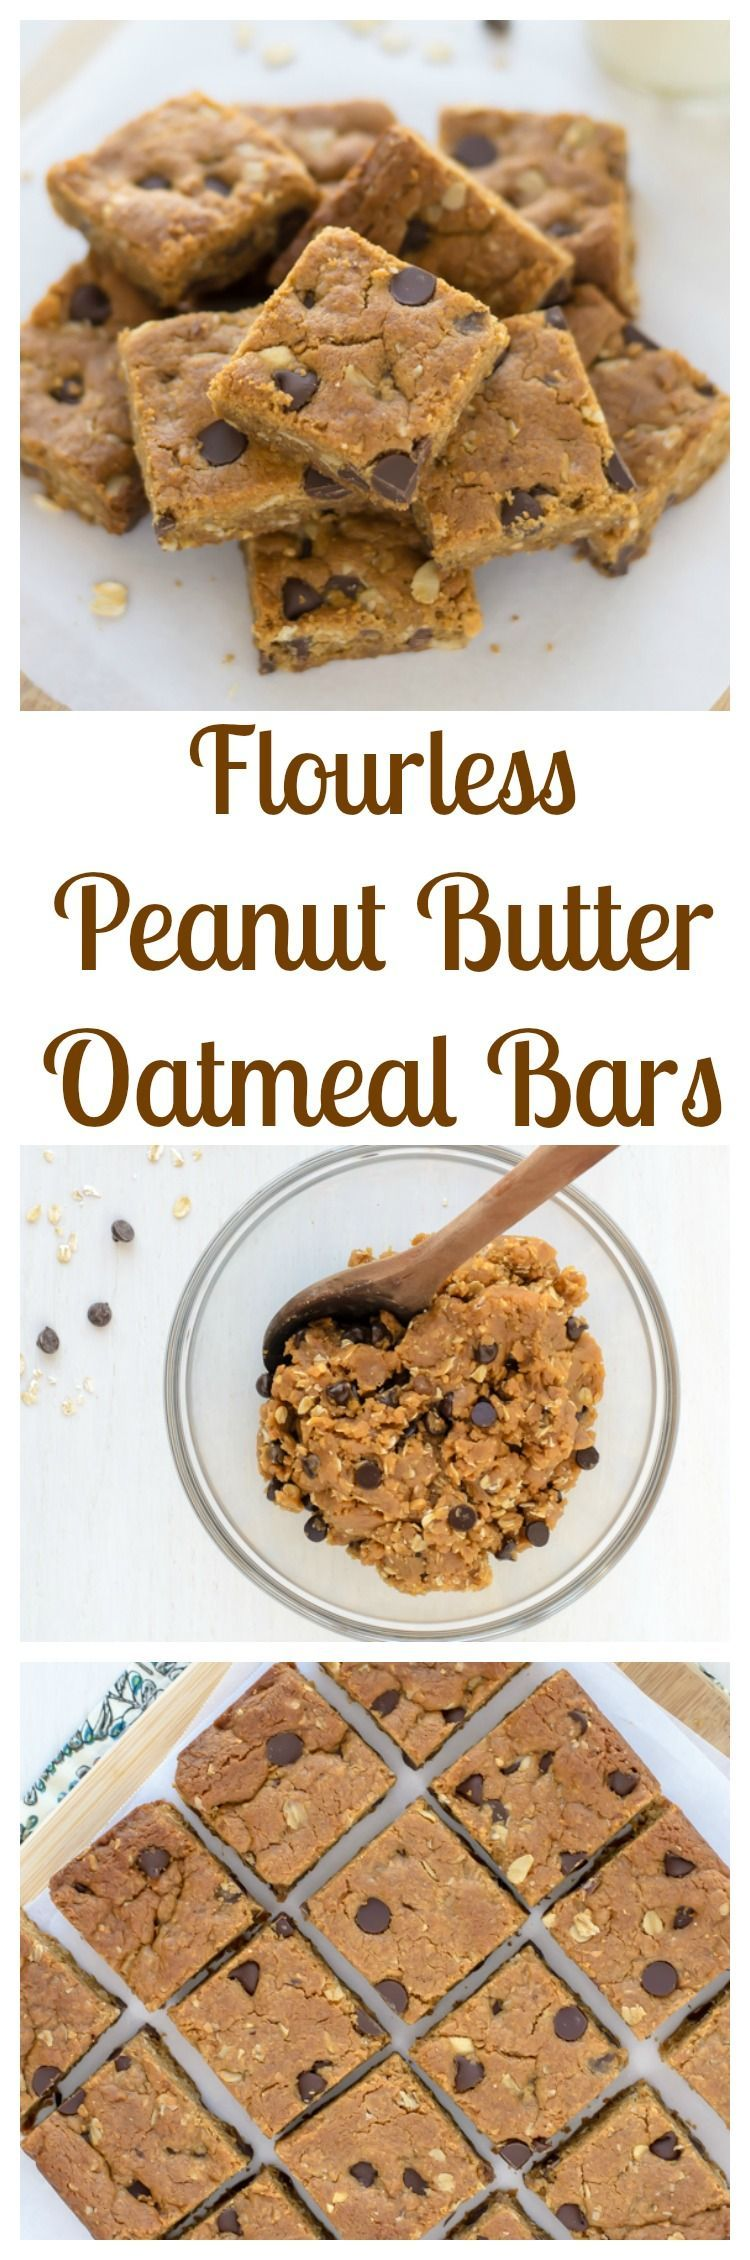 Flourless Peanut Butter Oatmeal Bars with Chocolate. Soft, chewy, and dangerously easy to make! (gluten free) Peanut Butter Oatmeal Bars with Chocolate. Soft, chewy, and dangerously easy to make! (gluten free)